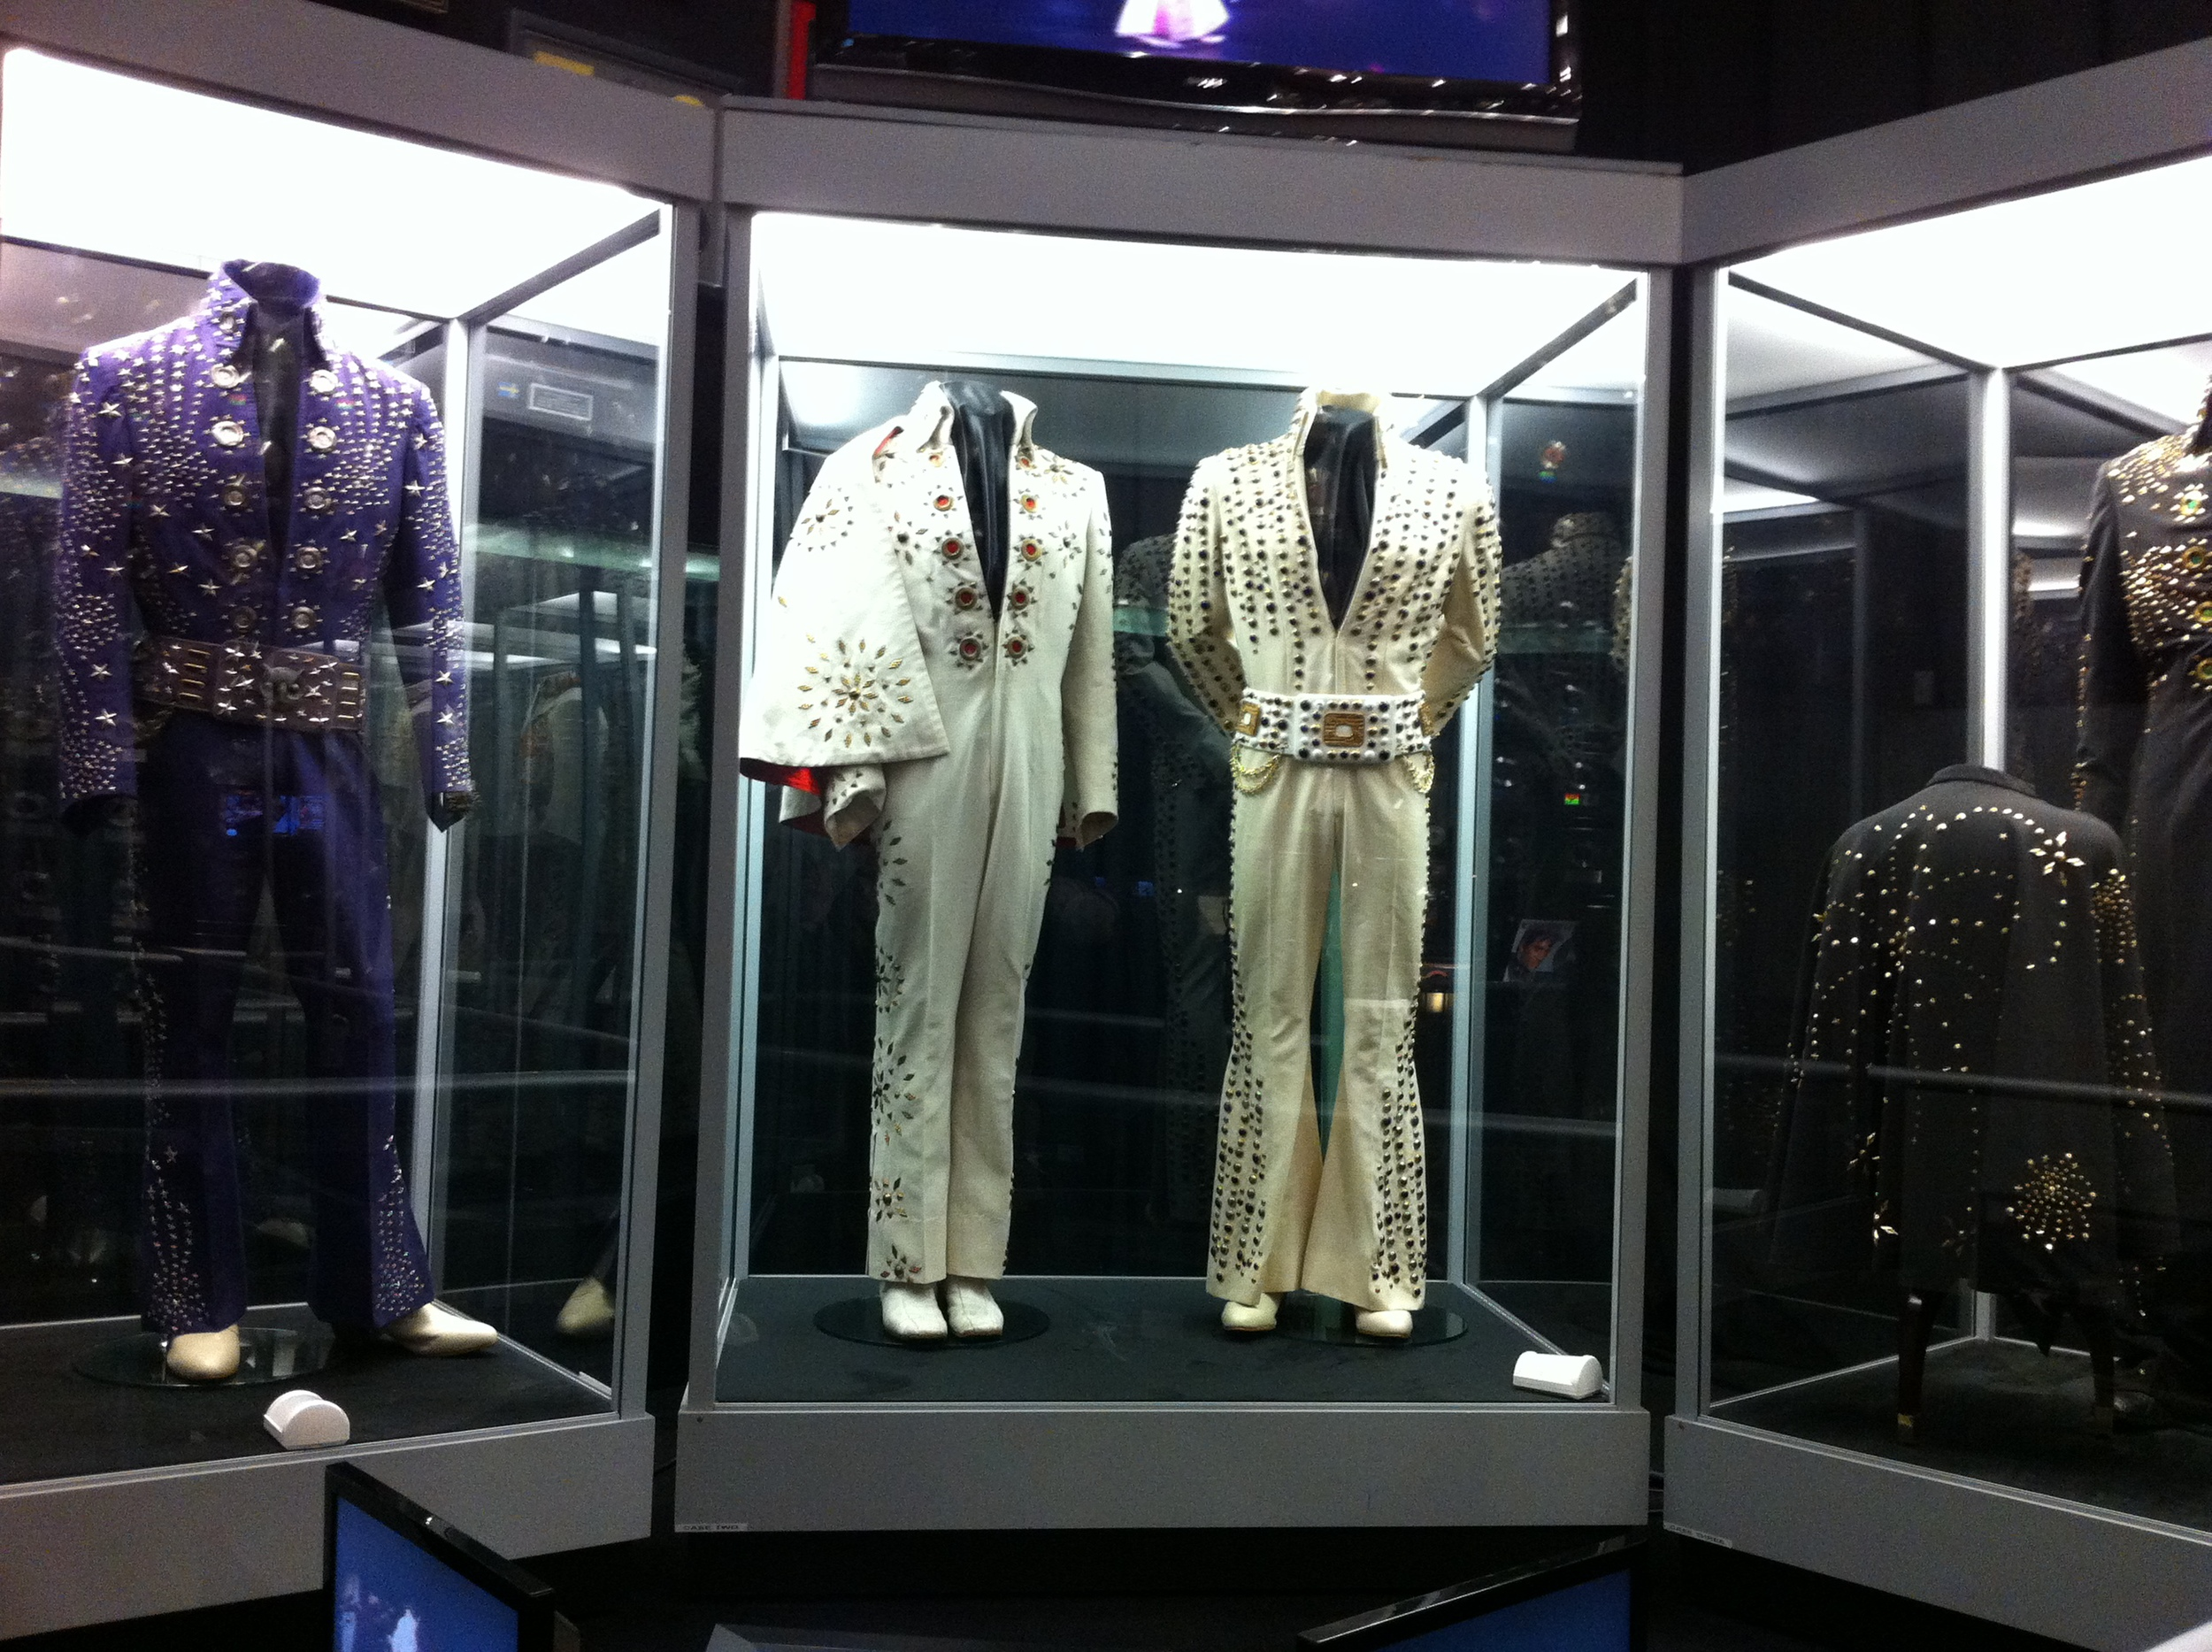 Just a few of the costume displays that you will encounter during your Graceland tour.